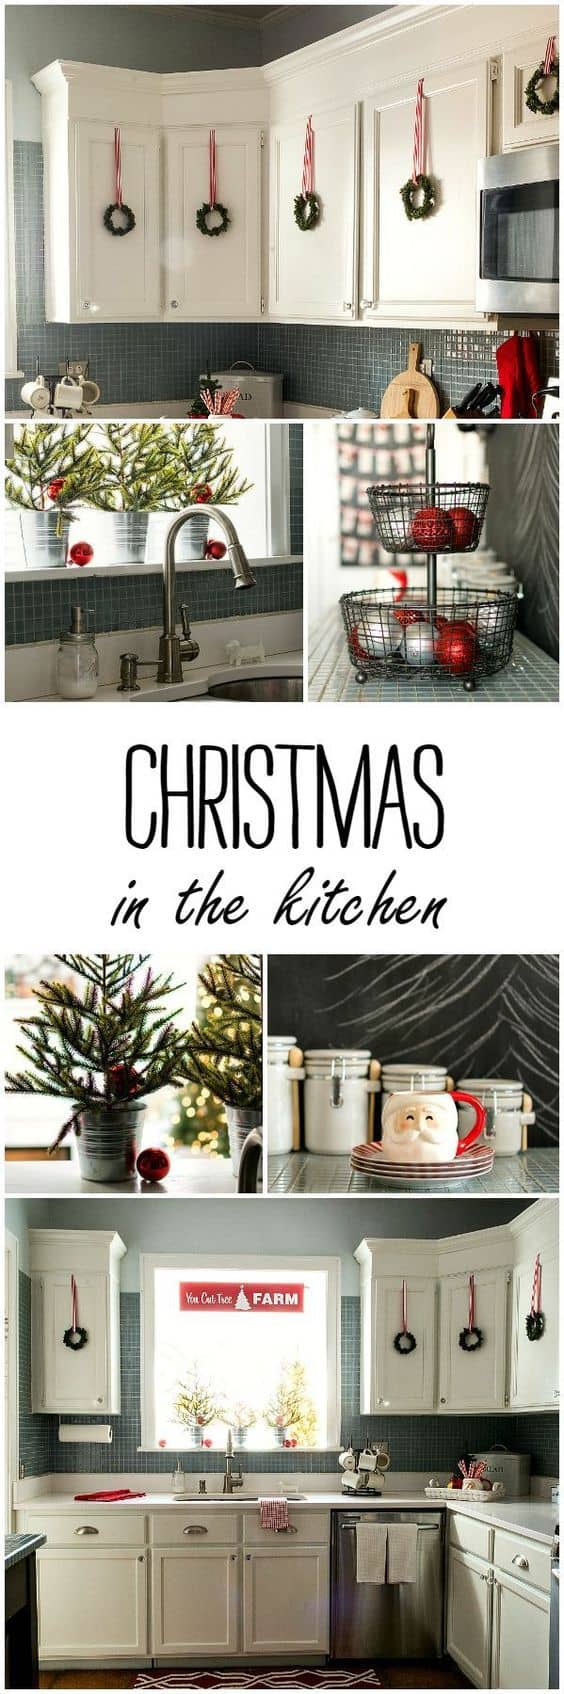 Cheap and easy Christmas decor ideas and Crafts. Find here Xmas decorations DIY for outdoor, living room and other spaces in your home or apartment. Here are the Christmas decor ideas 2017 on Pinterest! #Xmas #Christmas #christmasdecorating #ChristmasDecor